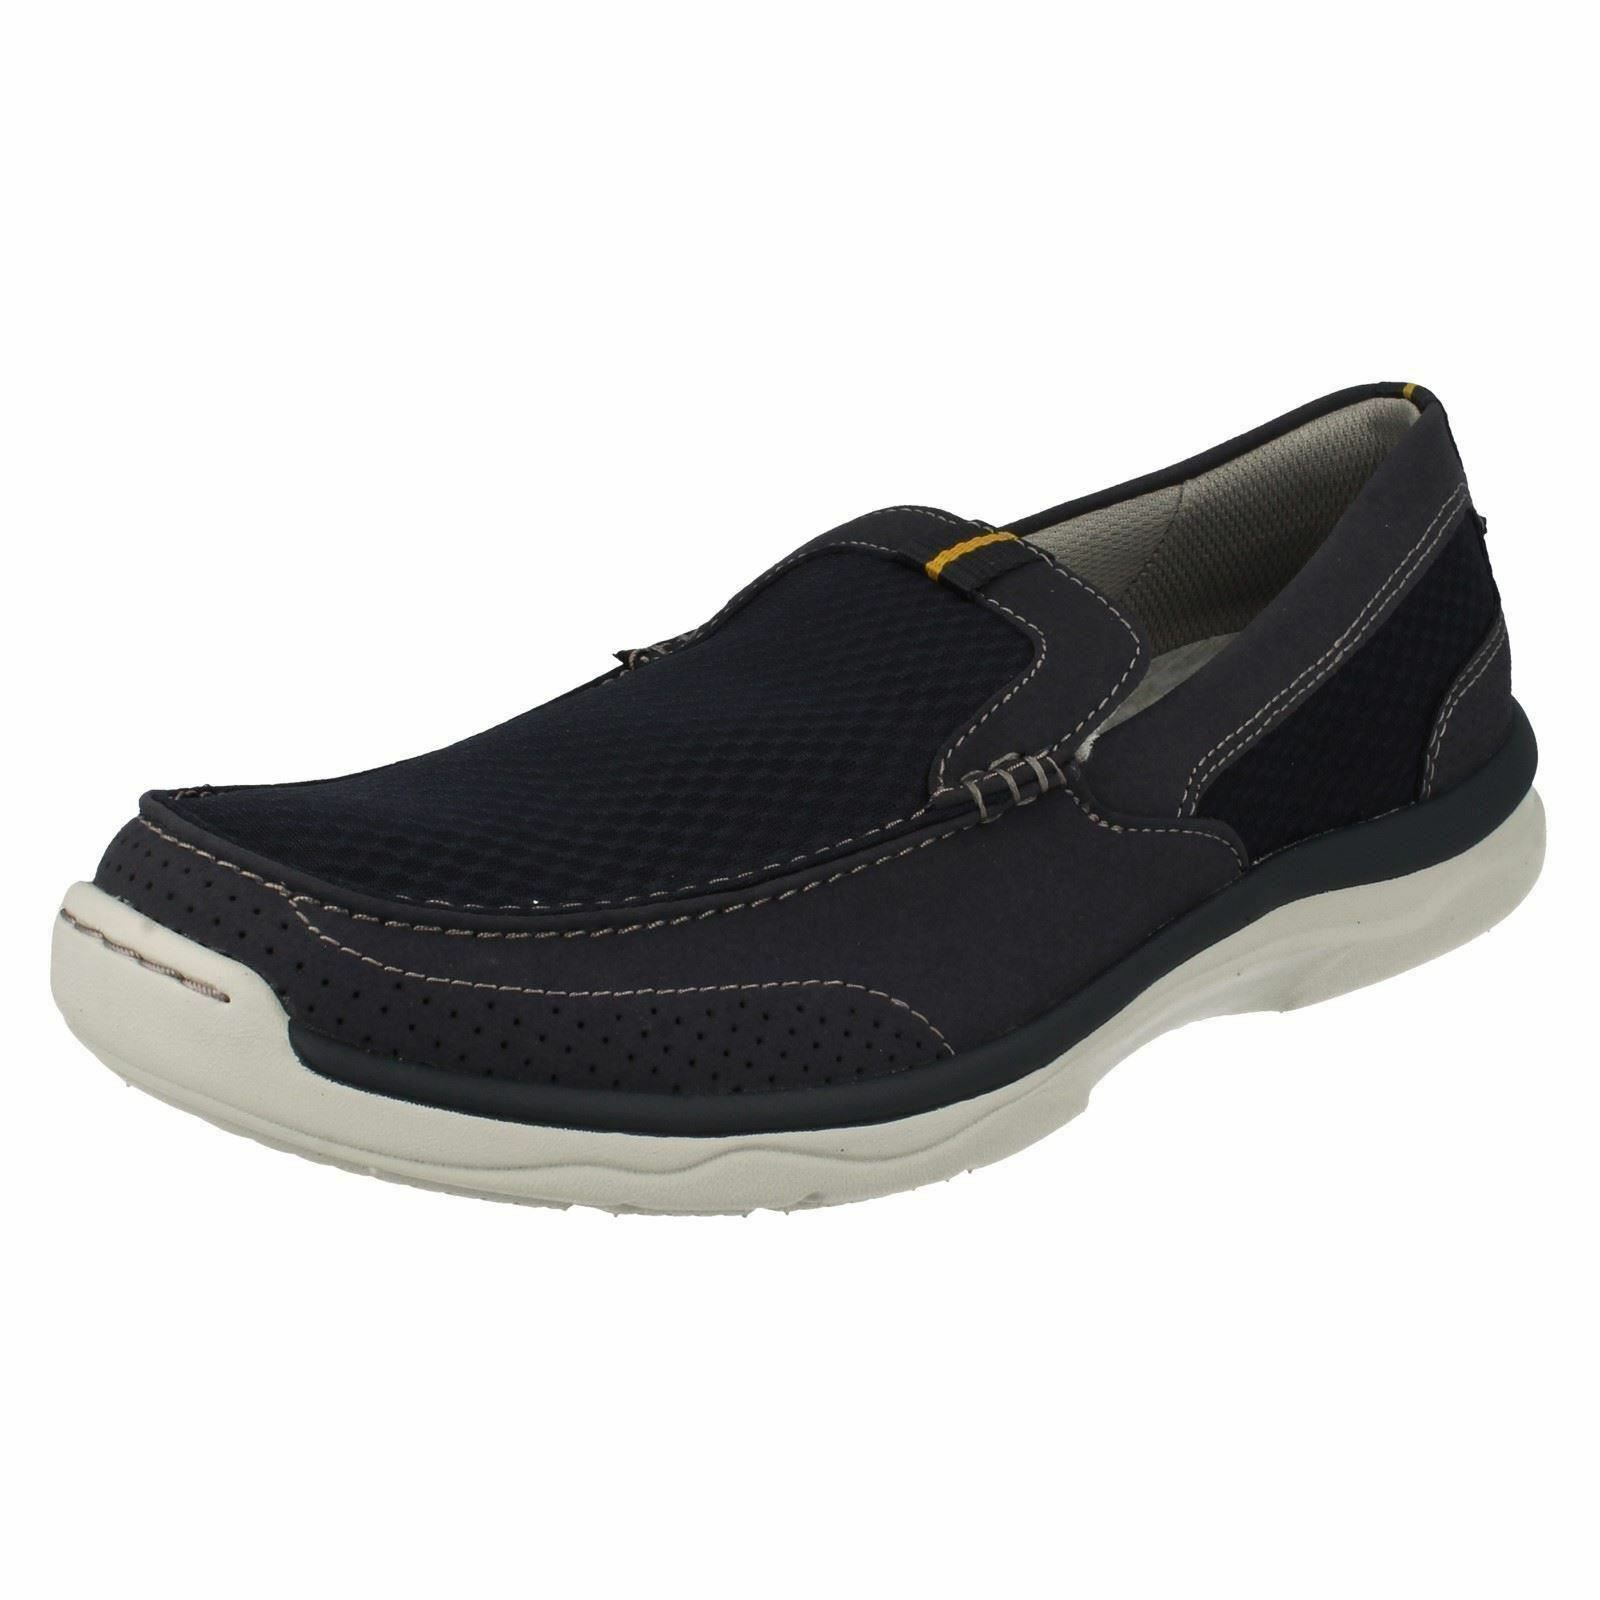 MENS CLBRKS NBVY SHOES MBRUS STEP